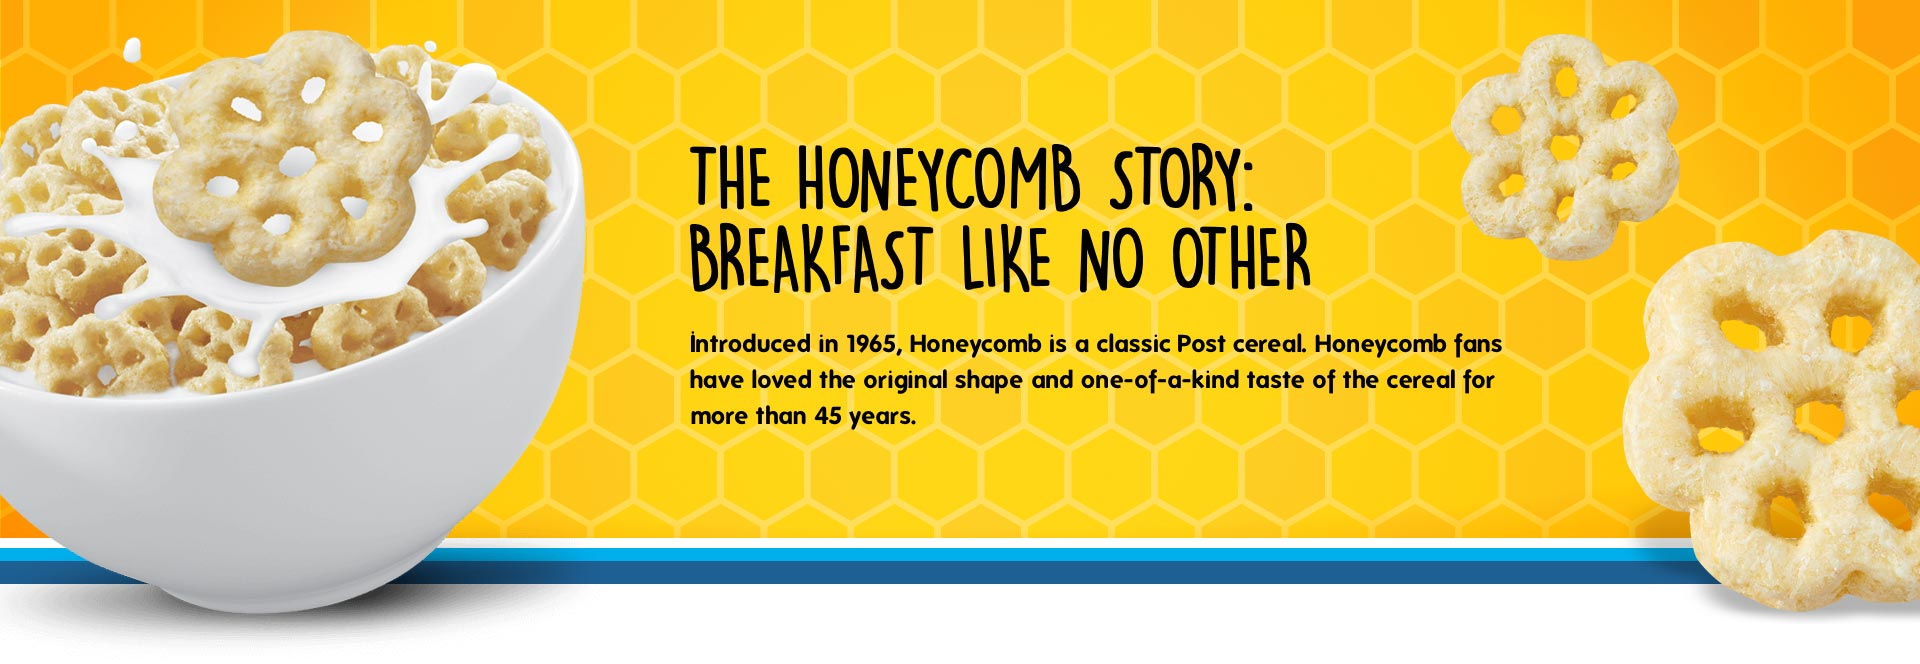 Introduced in 1965, Honeycomb is a classic post cereal. Honeycomb fans have loved the original shape and one-of-a-kind taste of the cereal for more than 45 years.